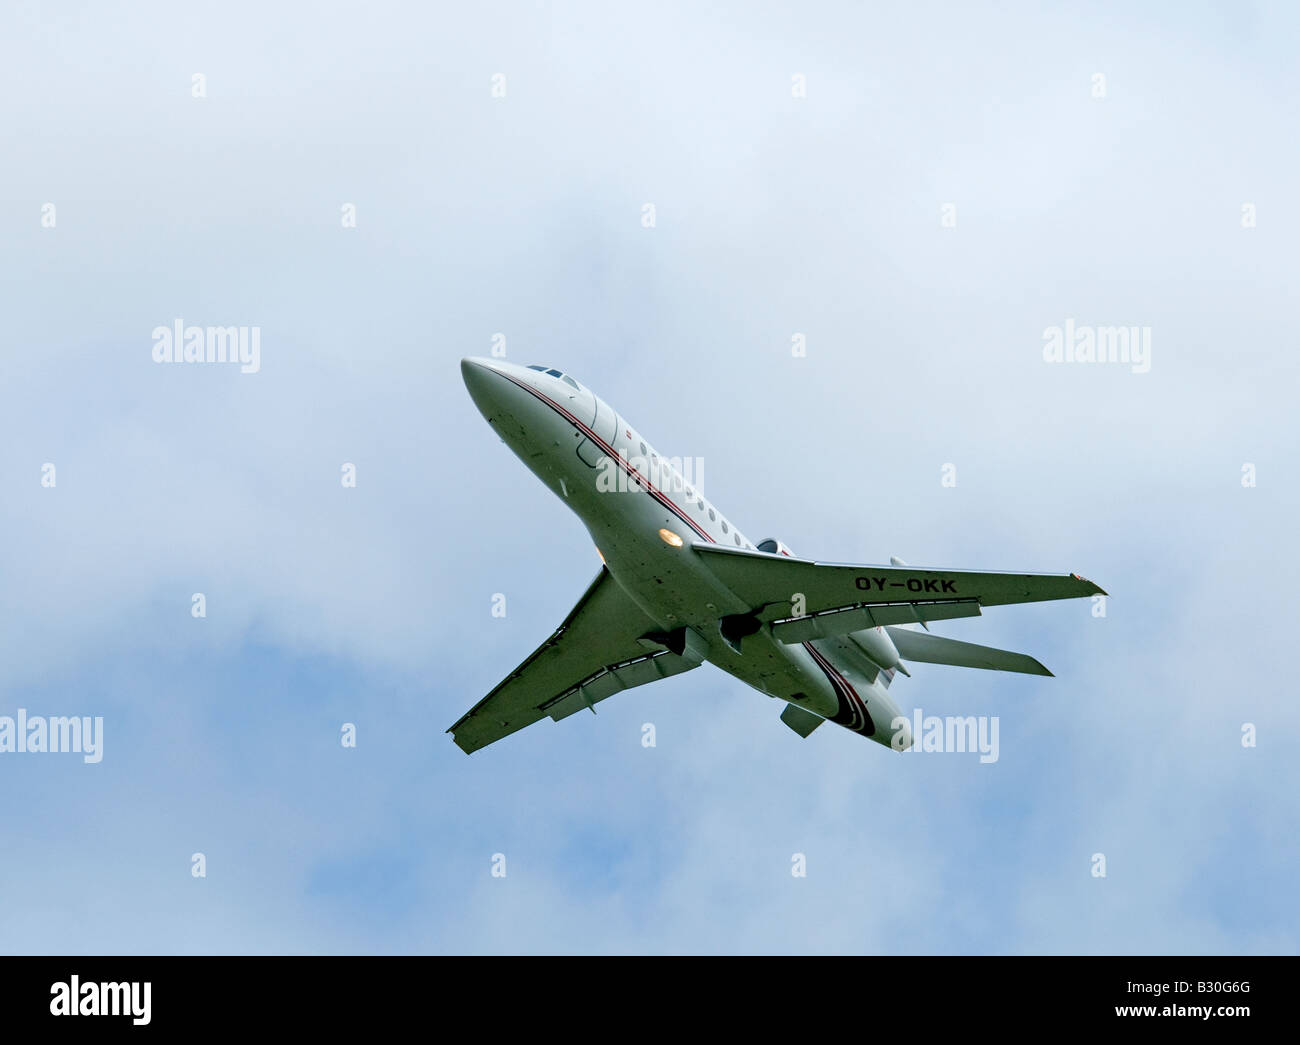 Dassault Falcon 900EX owned by the Danish Lego company leaving Inverness Airfield - Stock Image